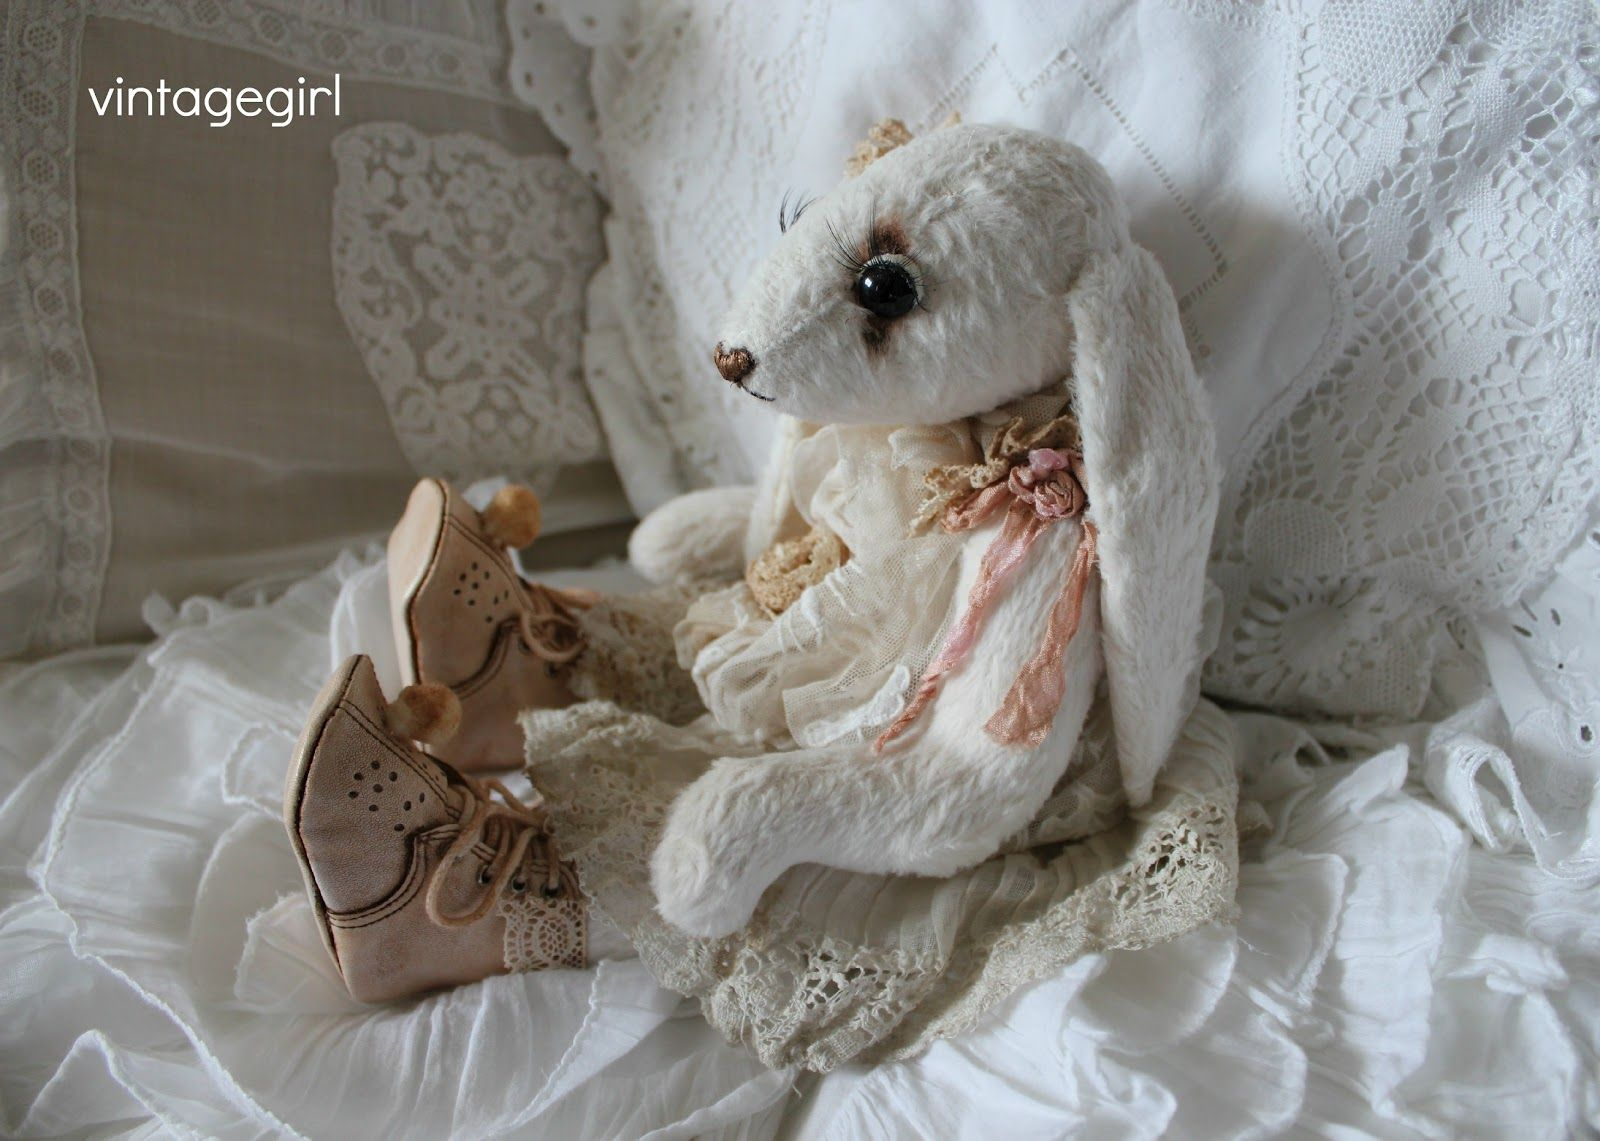 From Vintage Girl - I love the little shoes